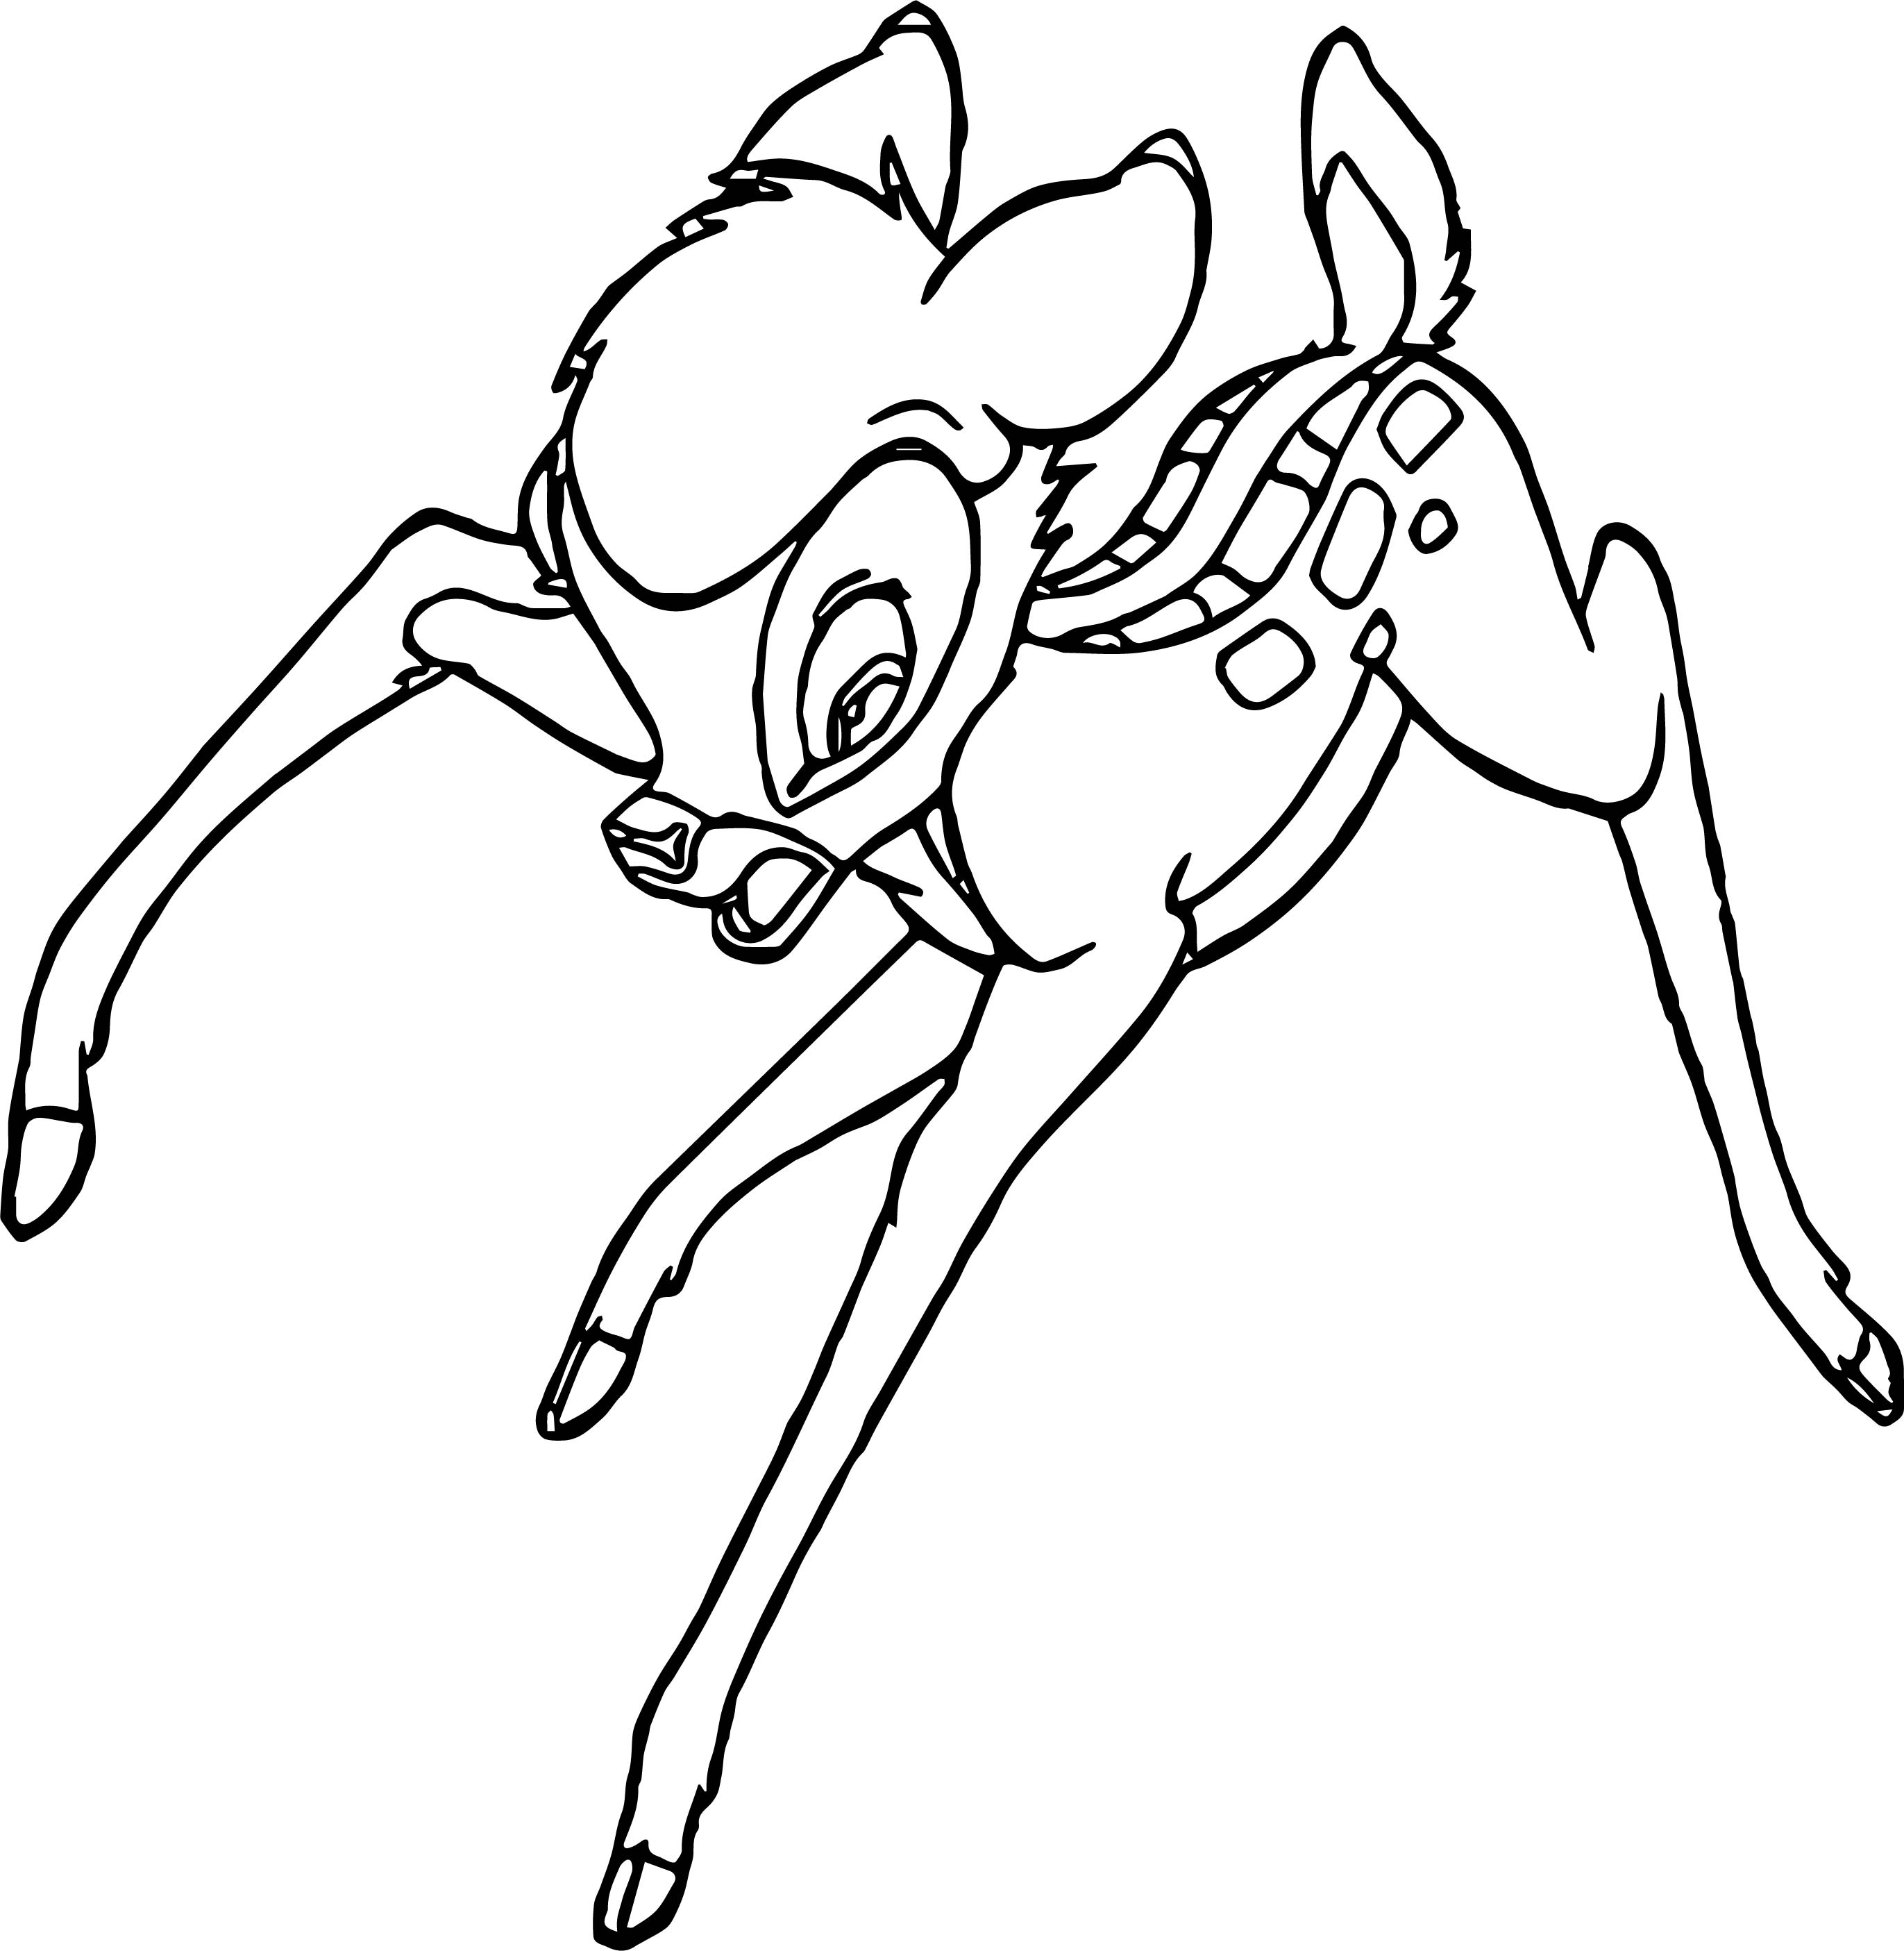 Bambi Scream Coloring Pages